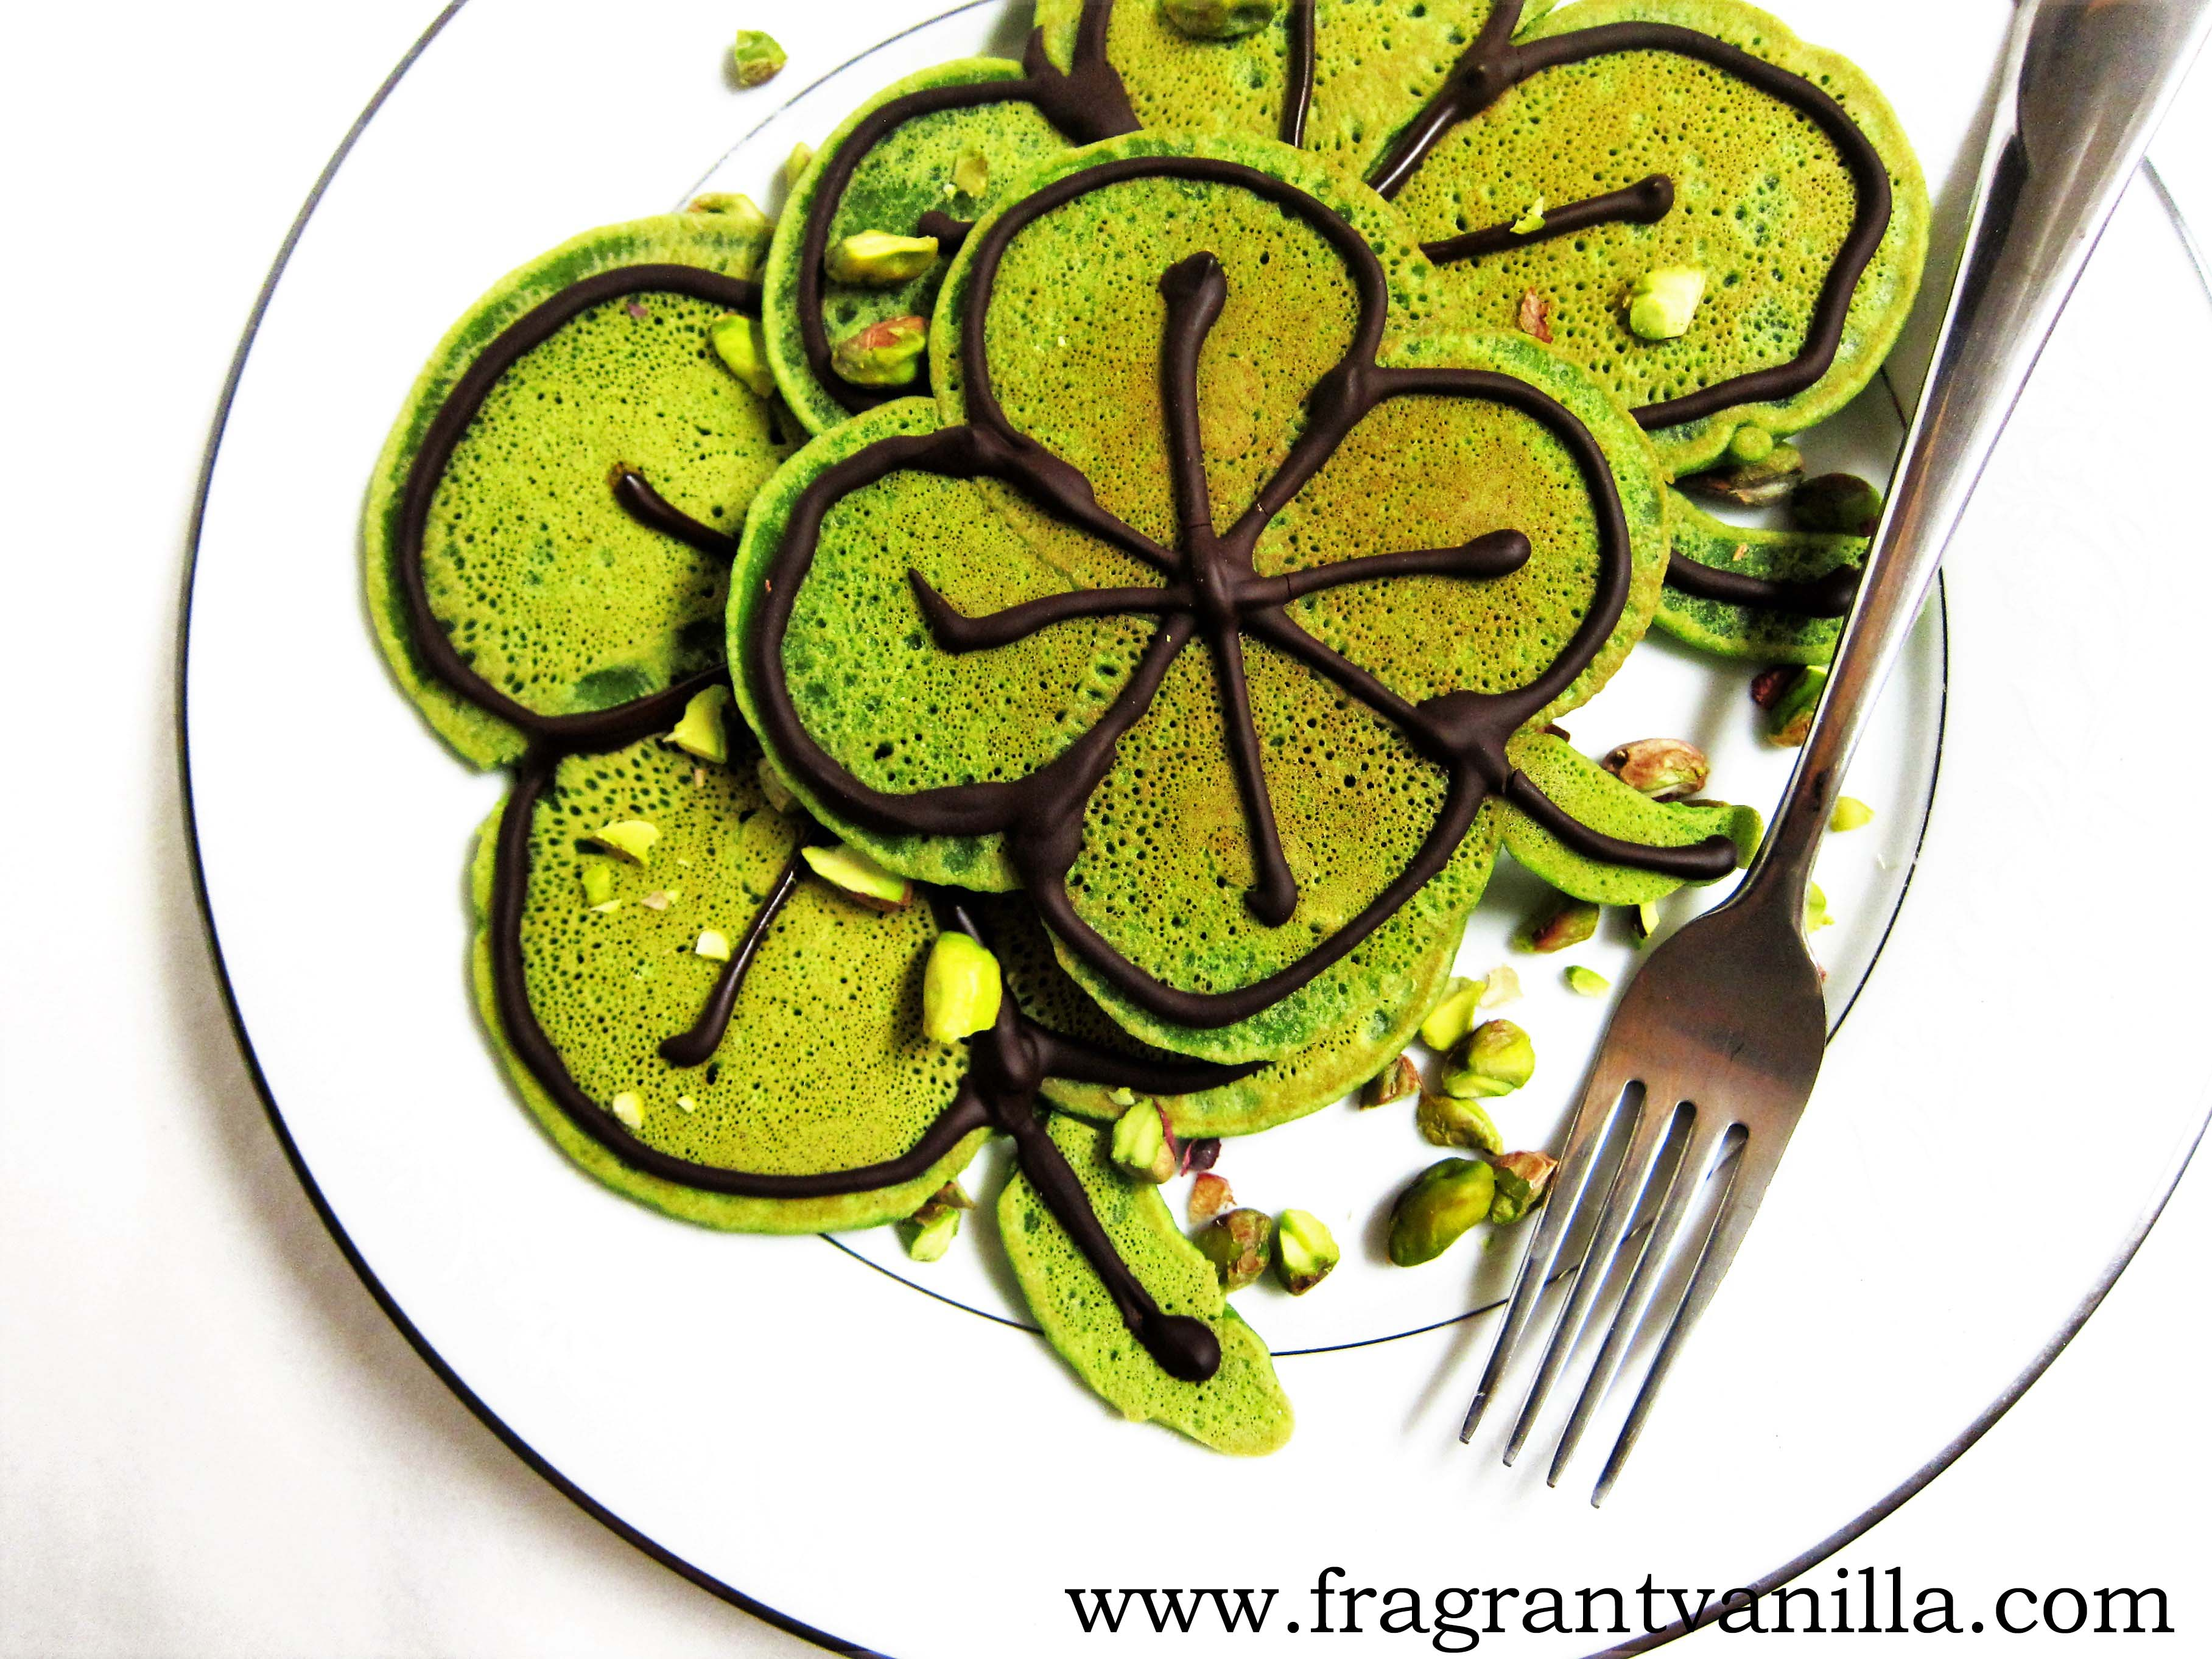 birds eye view of vegan st. patrick's day green shamrock pancakes served on a white plate with a silver fork garnished with chopped pistachios